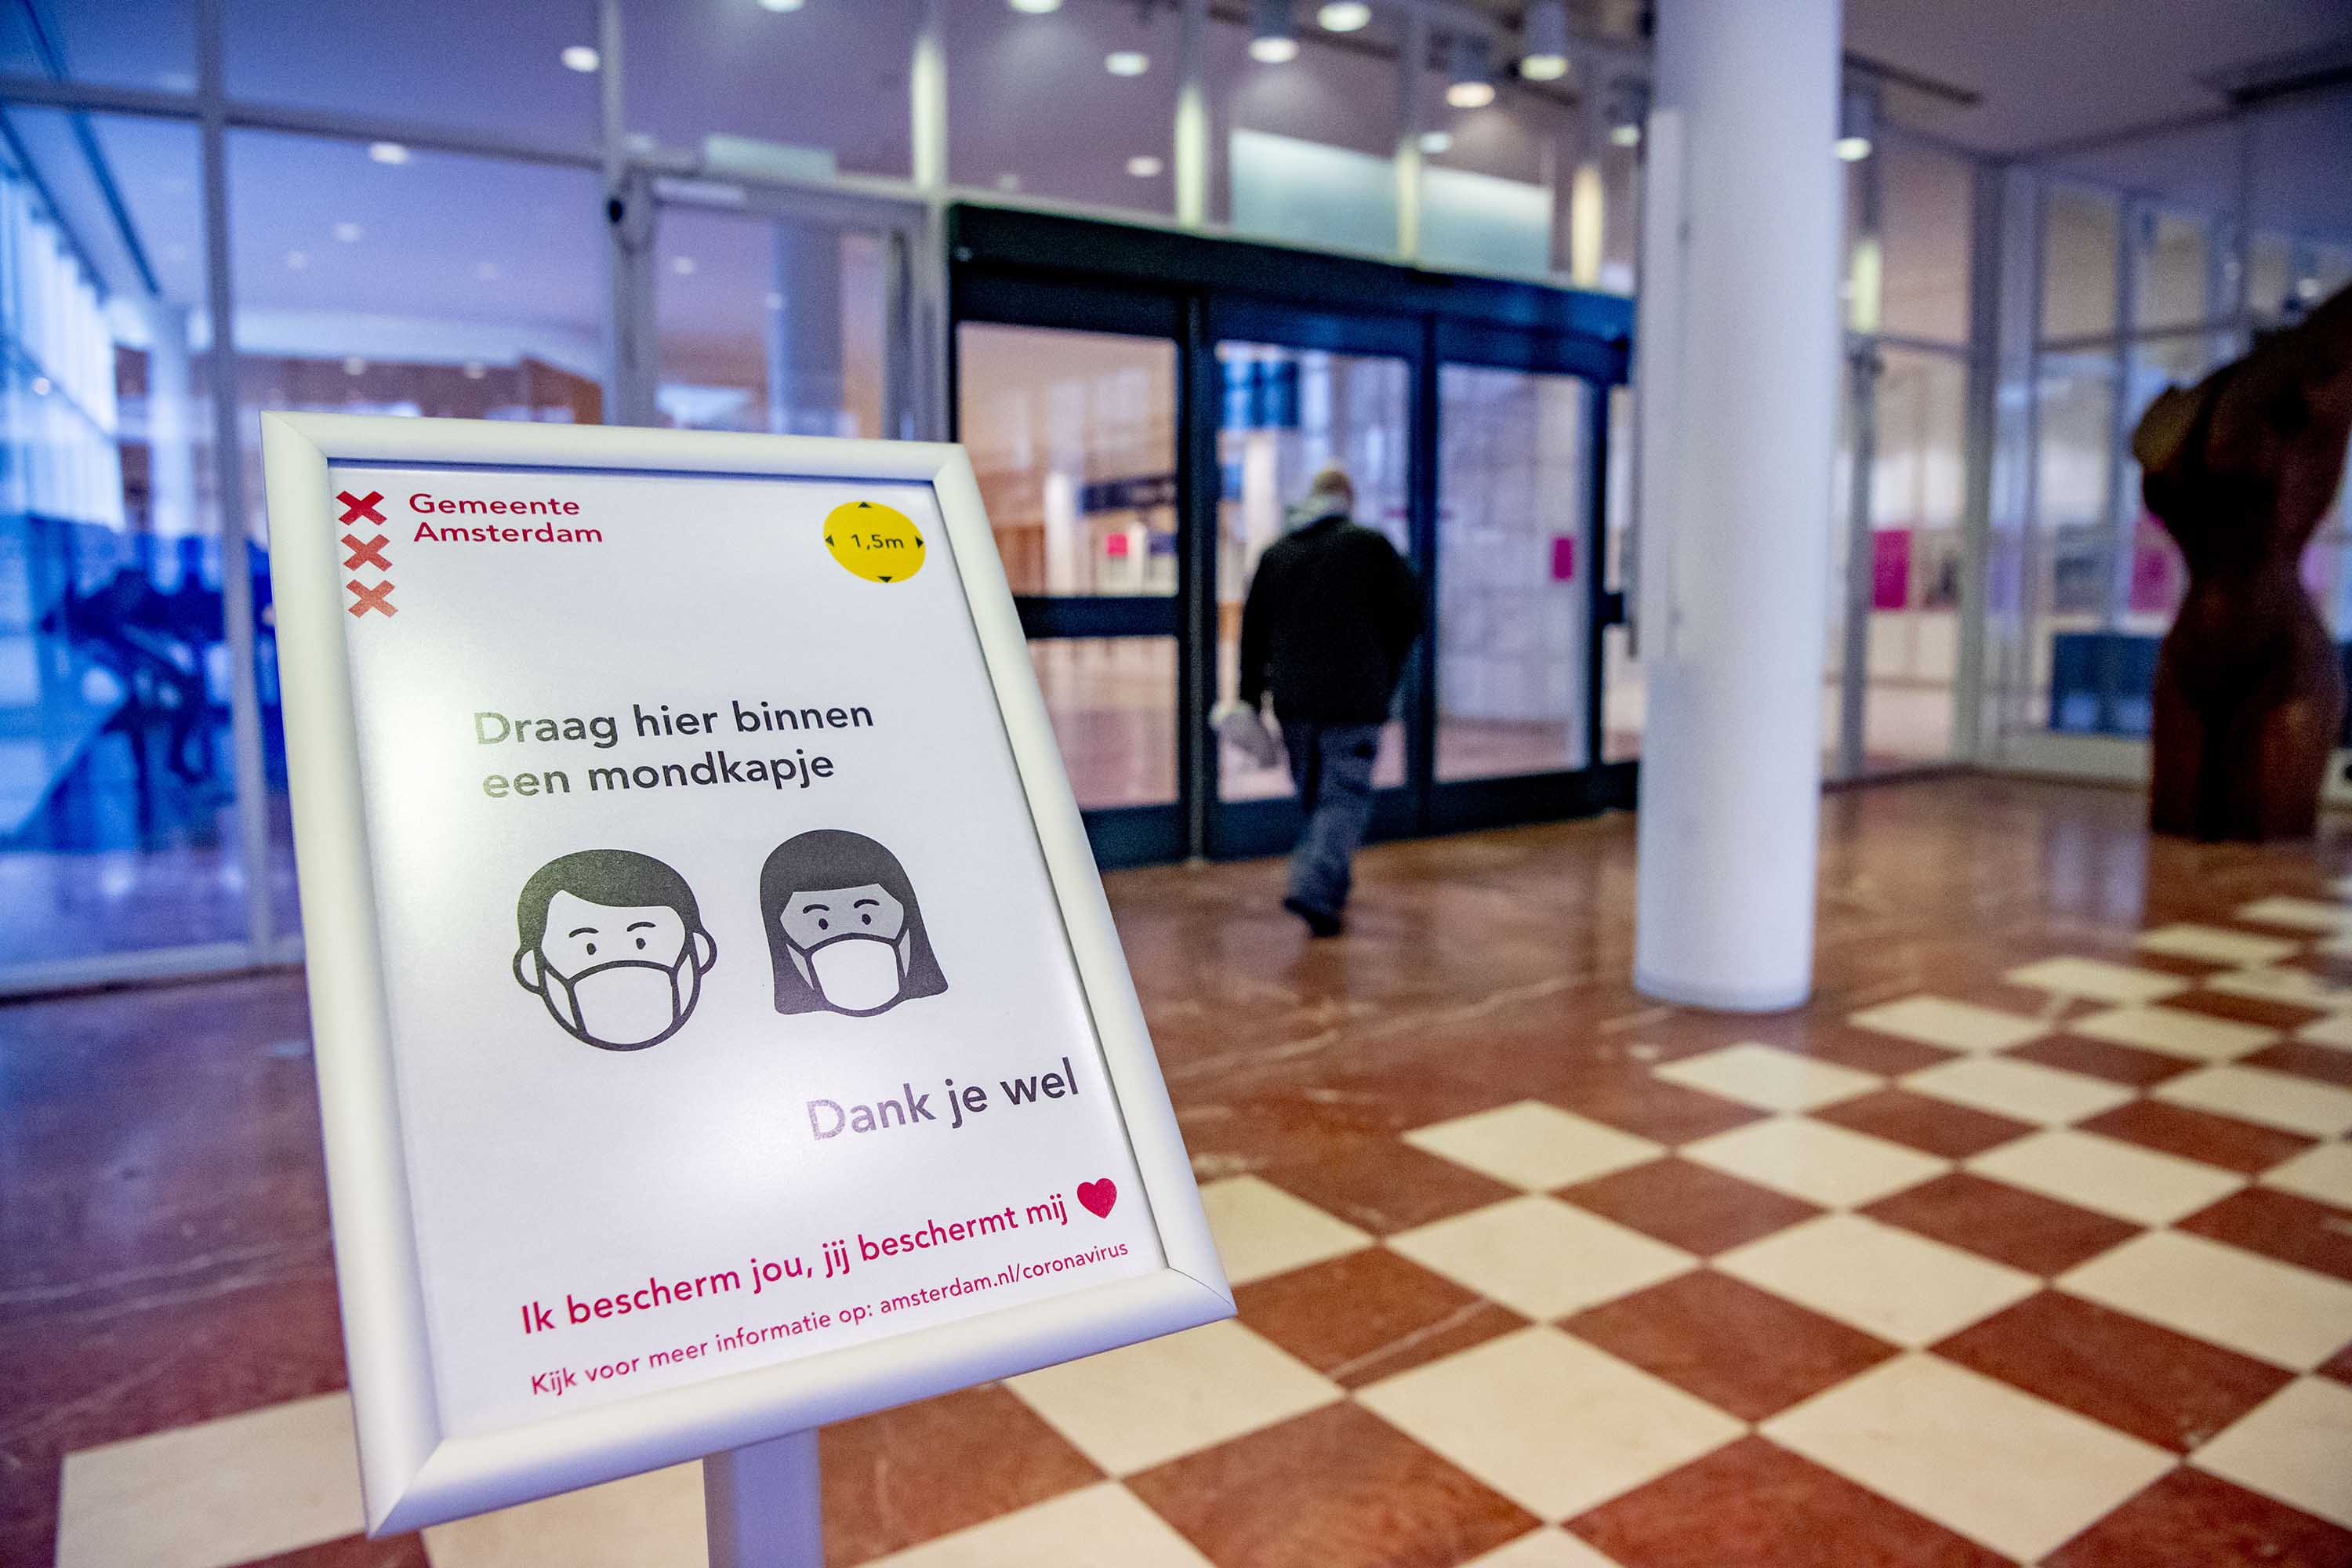 A notice about wearing face masks is displayed in Amsterdam, The Netherlands, on November 30.